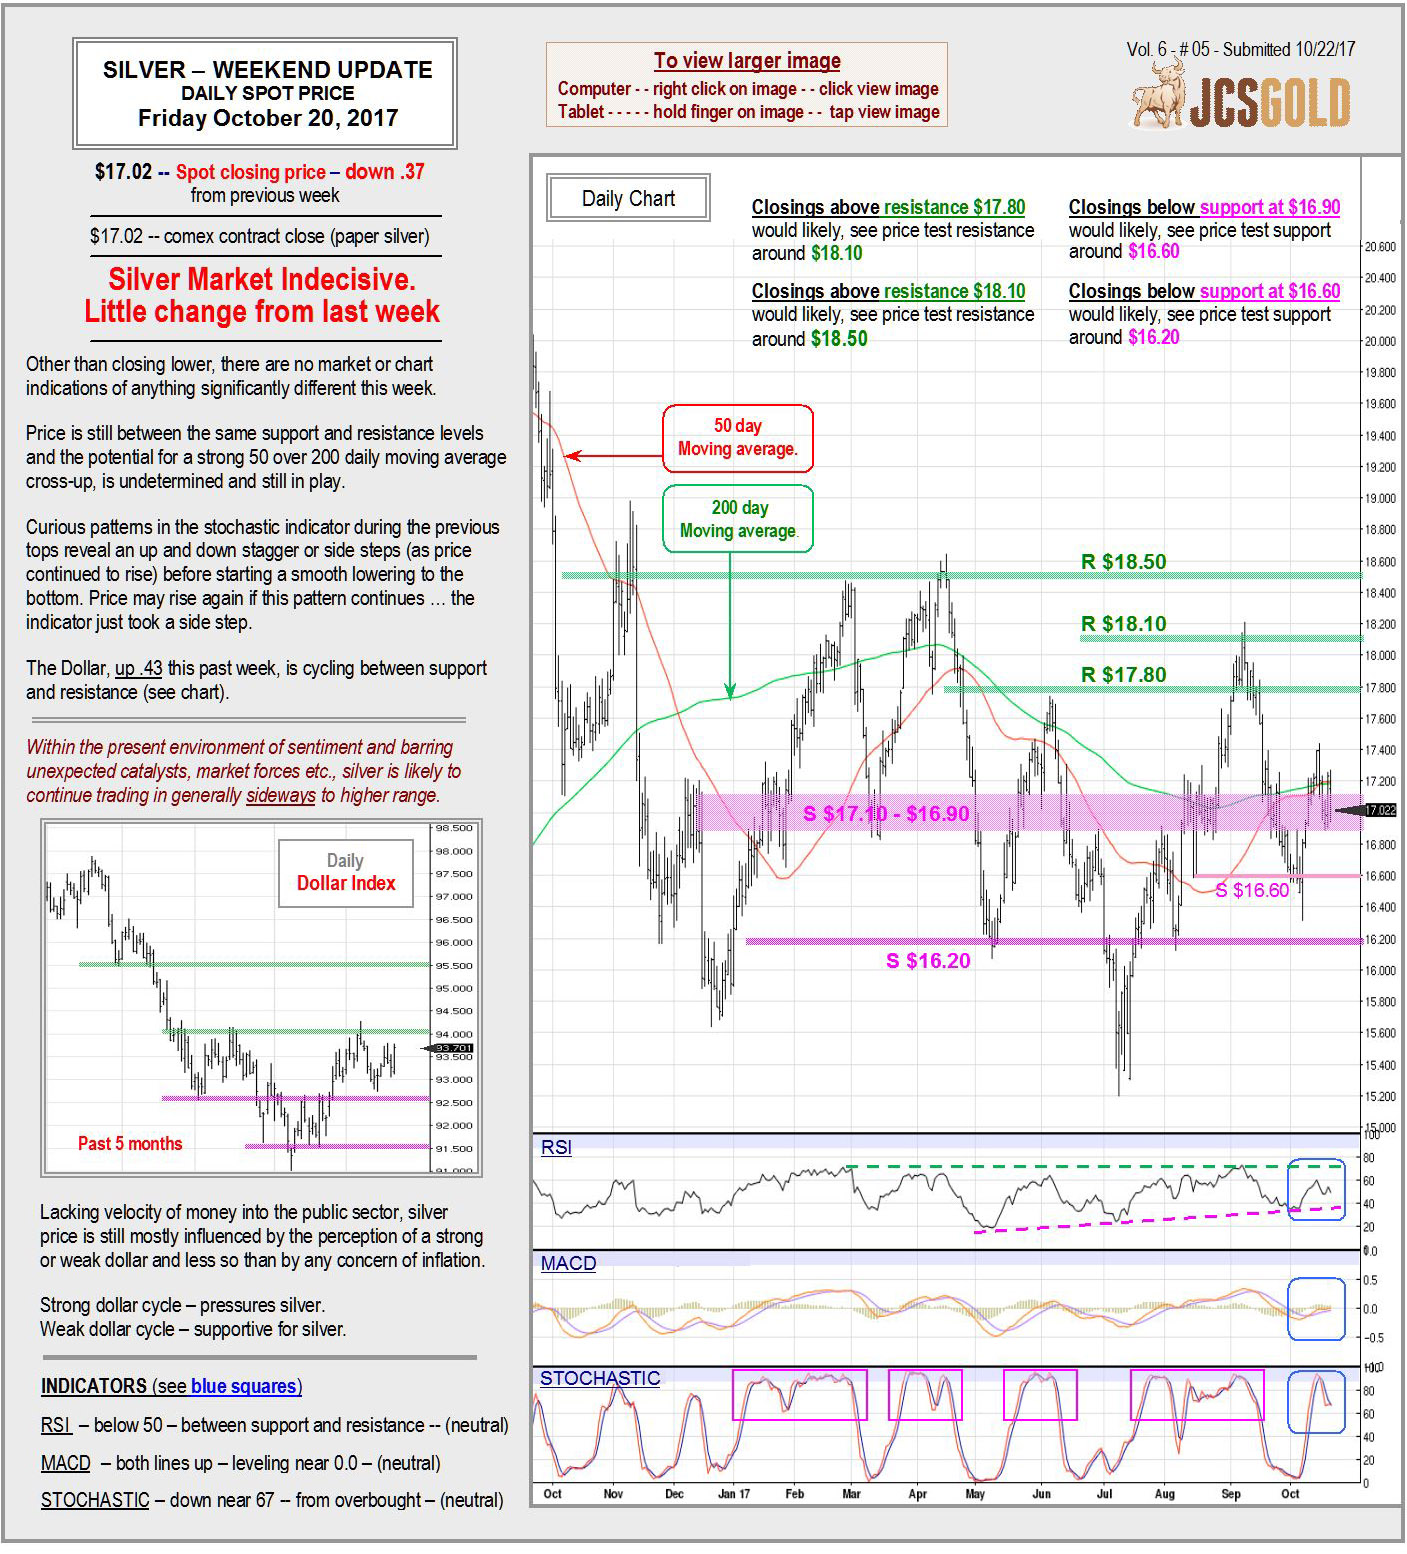 Oct. 20, 2017 chart & commentary